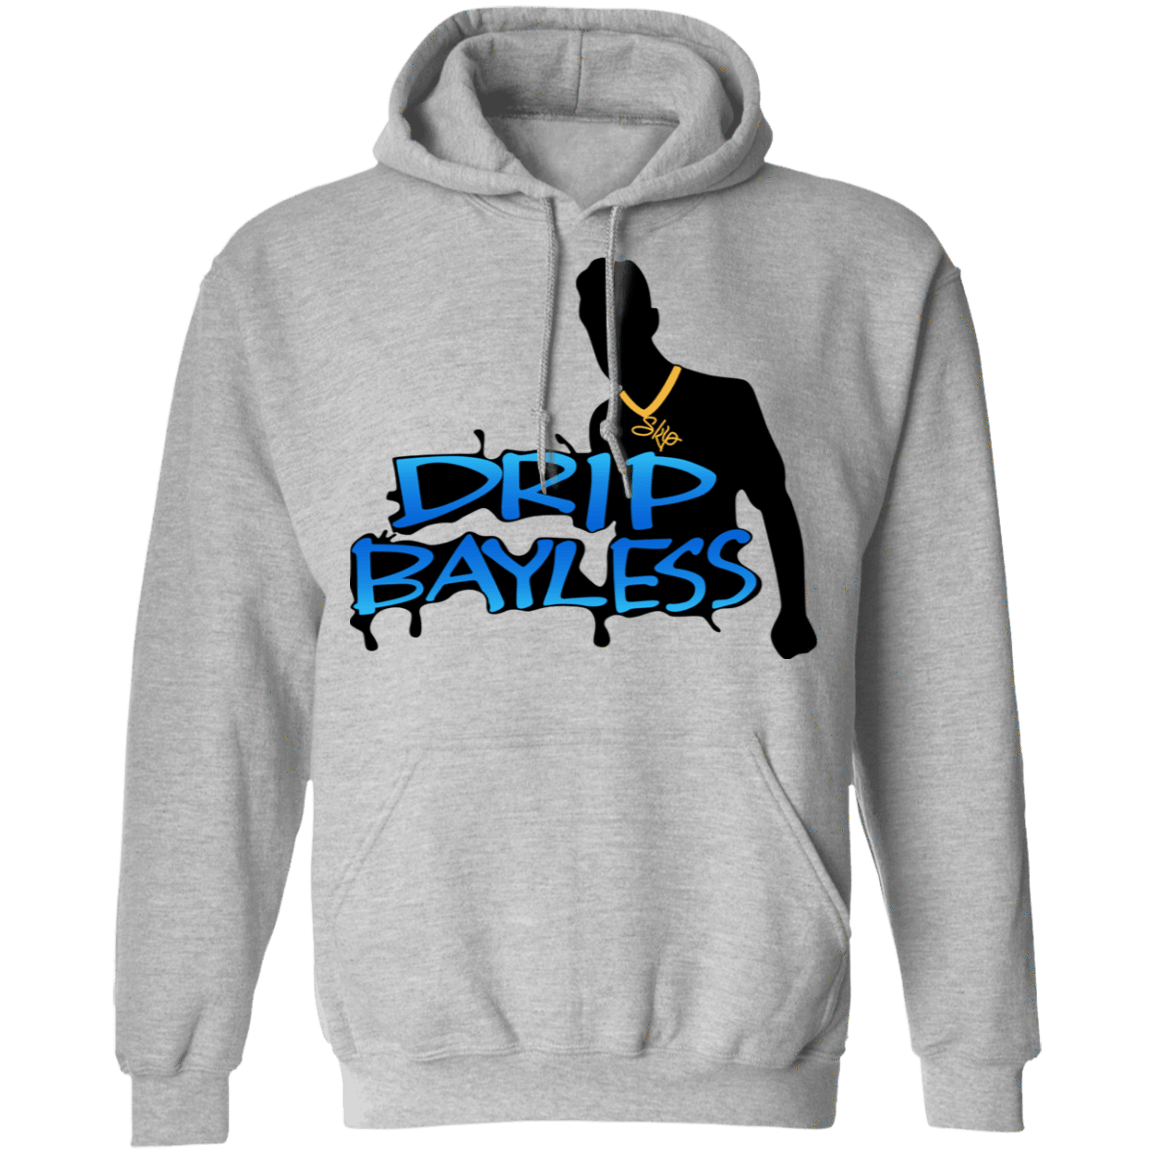 Snoop Dogg Drip Bayless T-Shirts, Hoodies, Tank 541-4741-80393819-23111 - Tee Ript